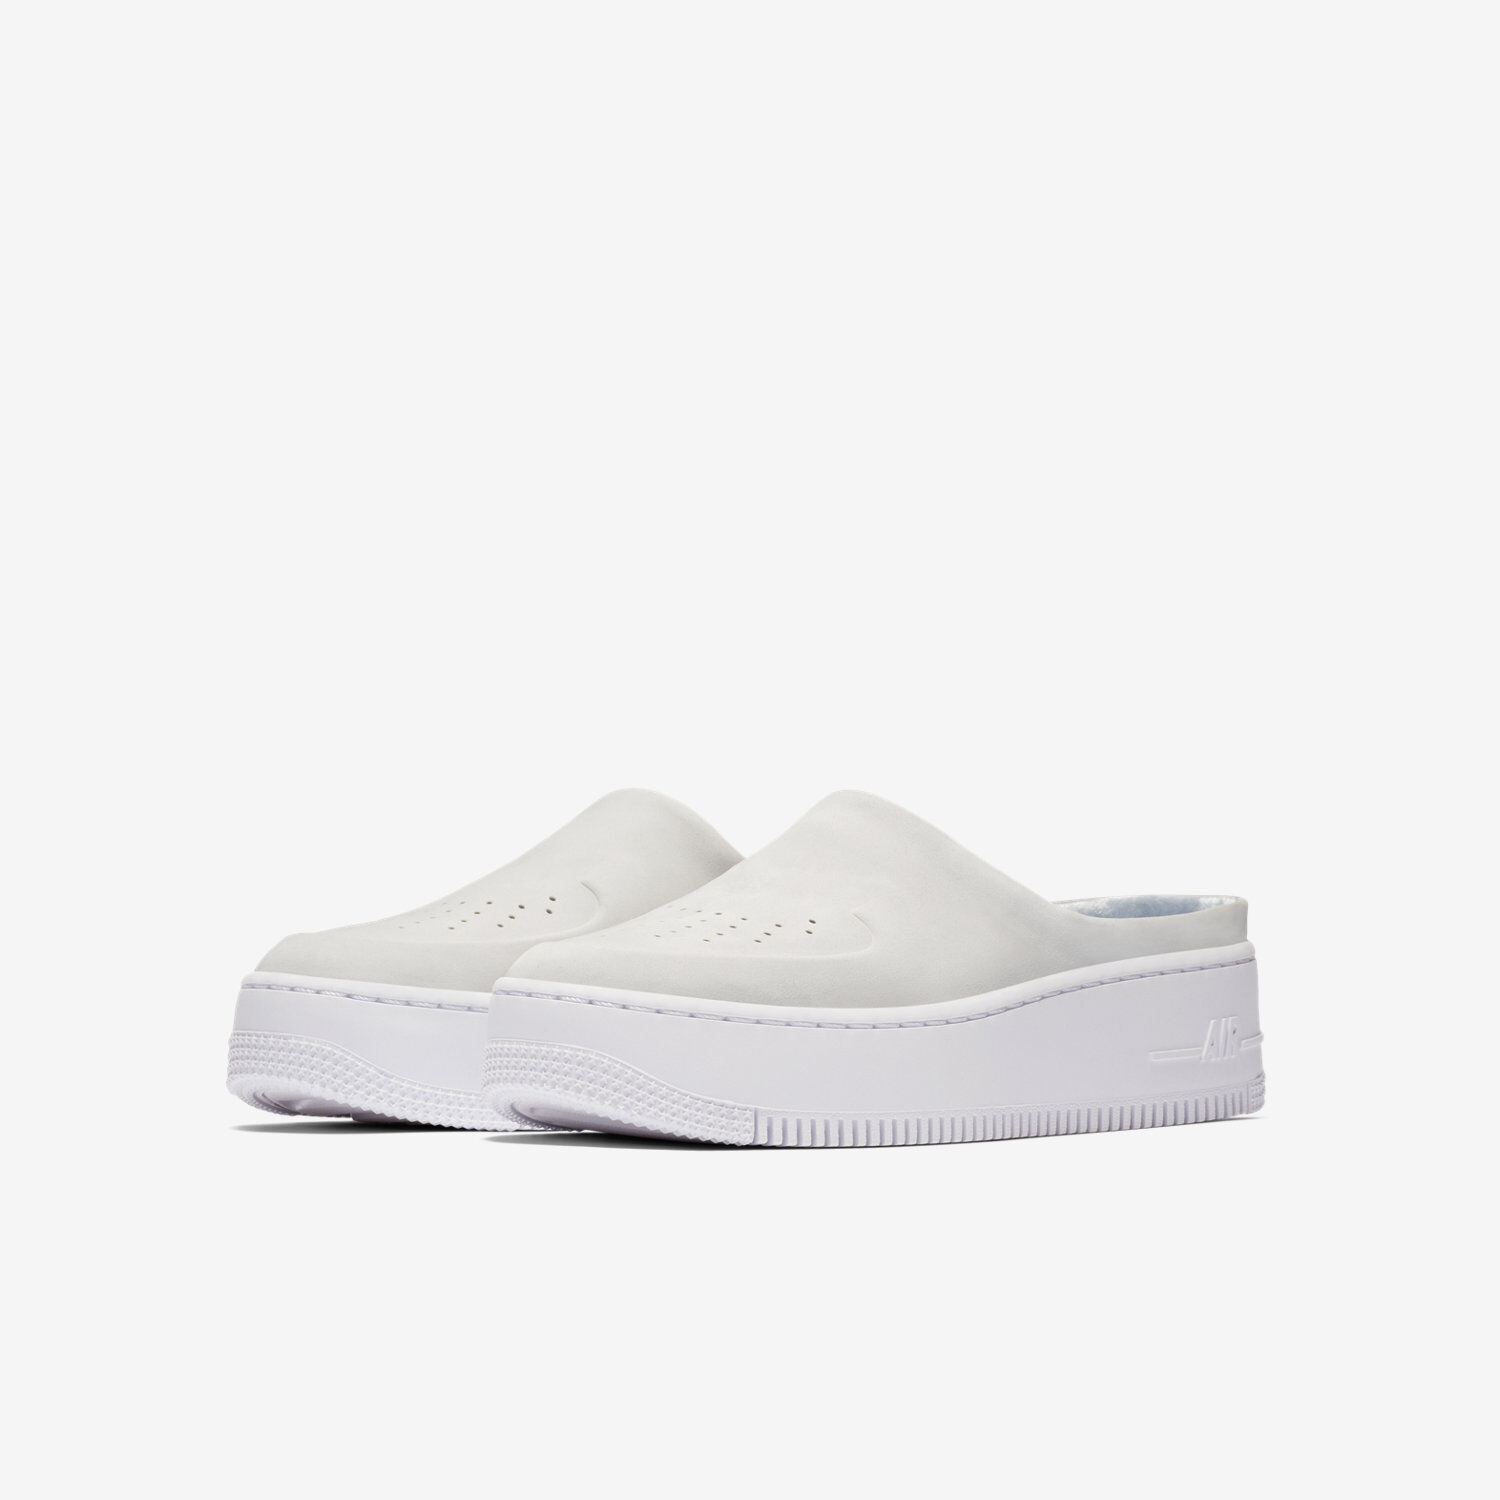 Nike Air Force One AF1 Lover XX Women's Shoes Sizes 5-8 Off White AO1523-100